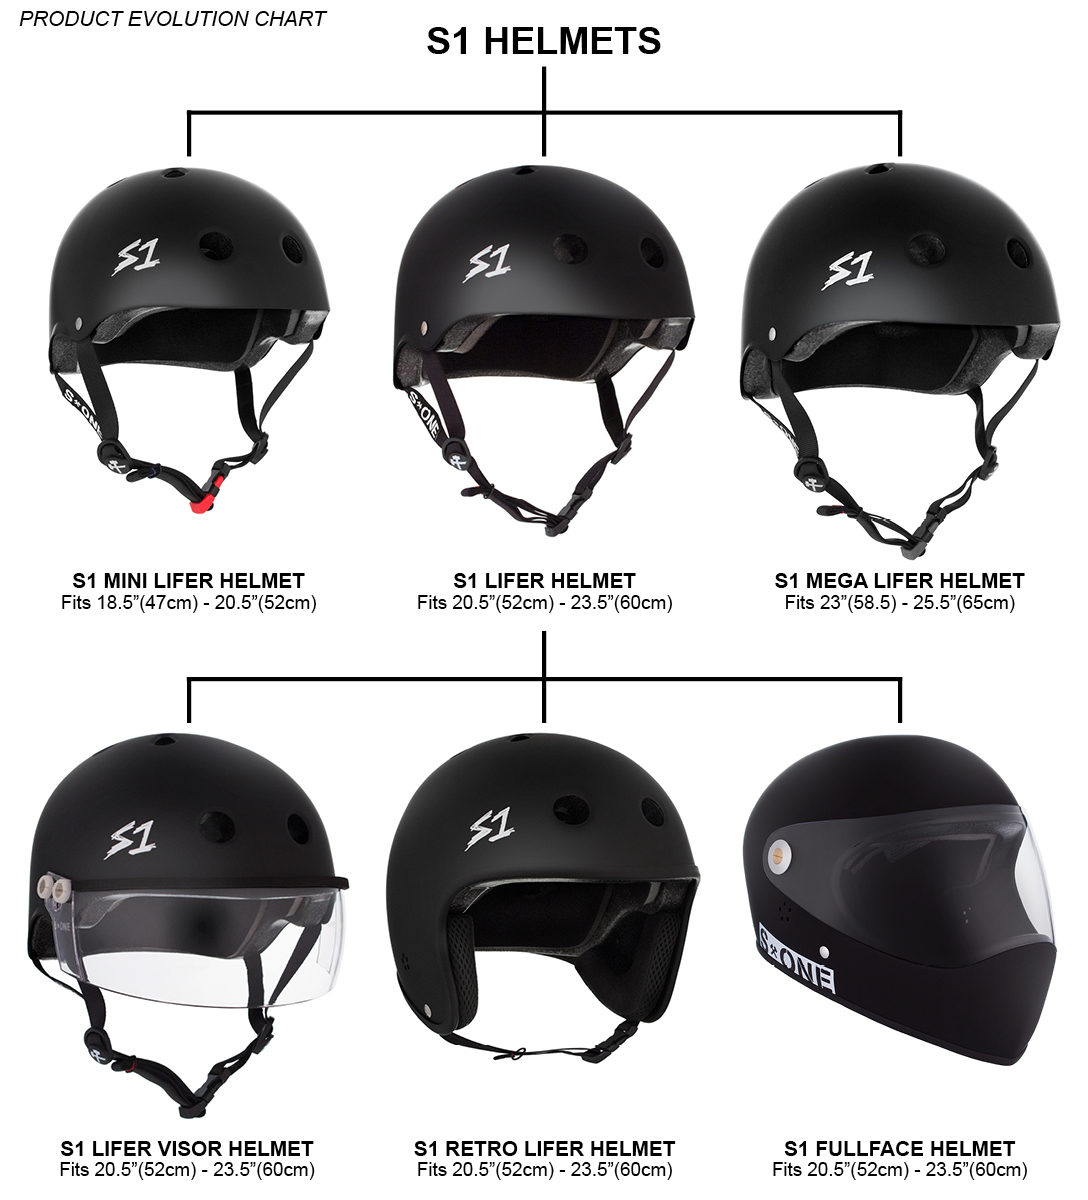 2019-s1-helmet-family-tree3.jpg